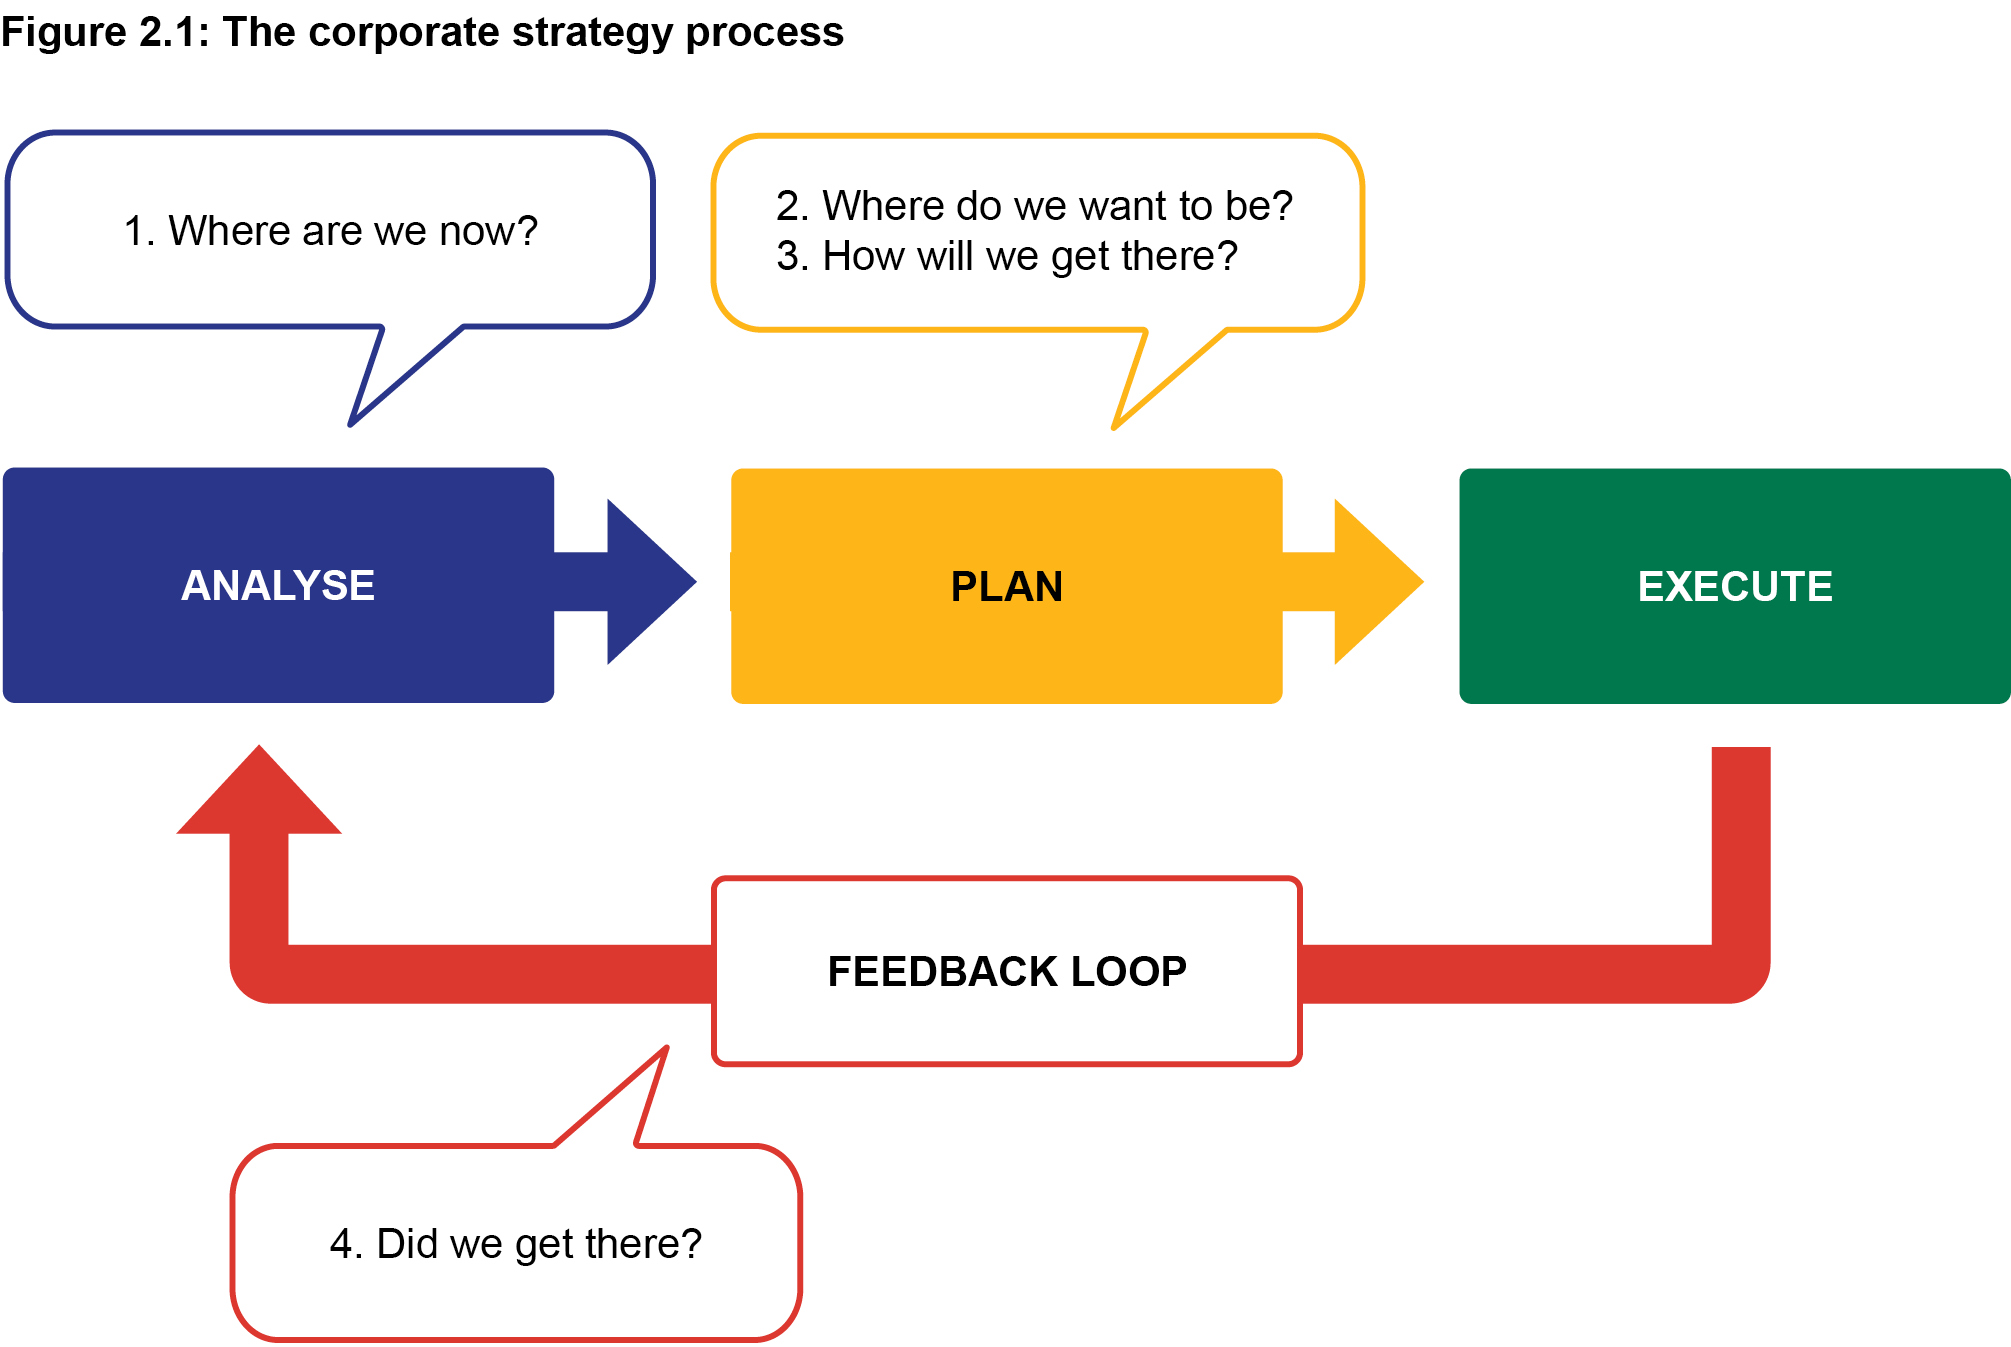 Figure 2.1: The corporate strategy process